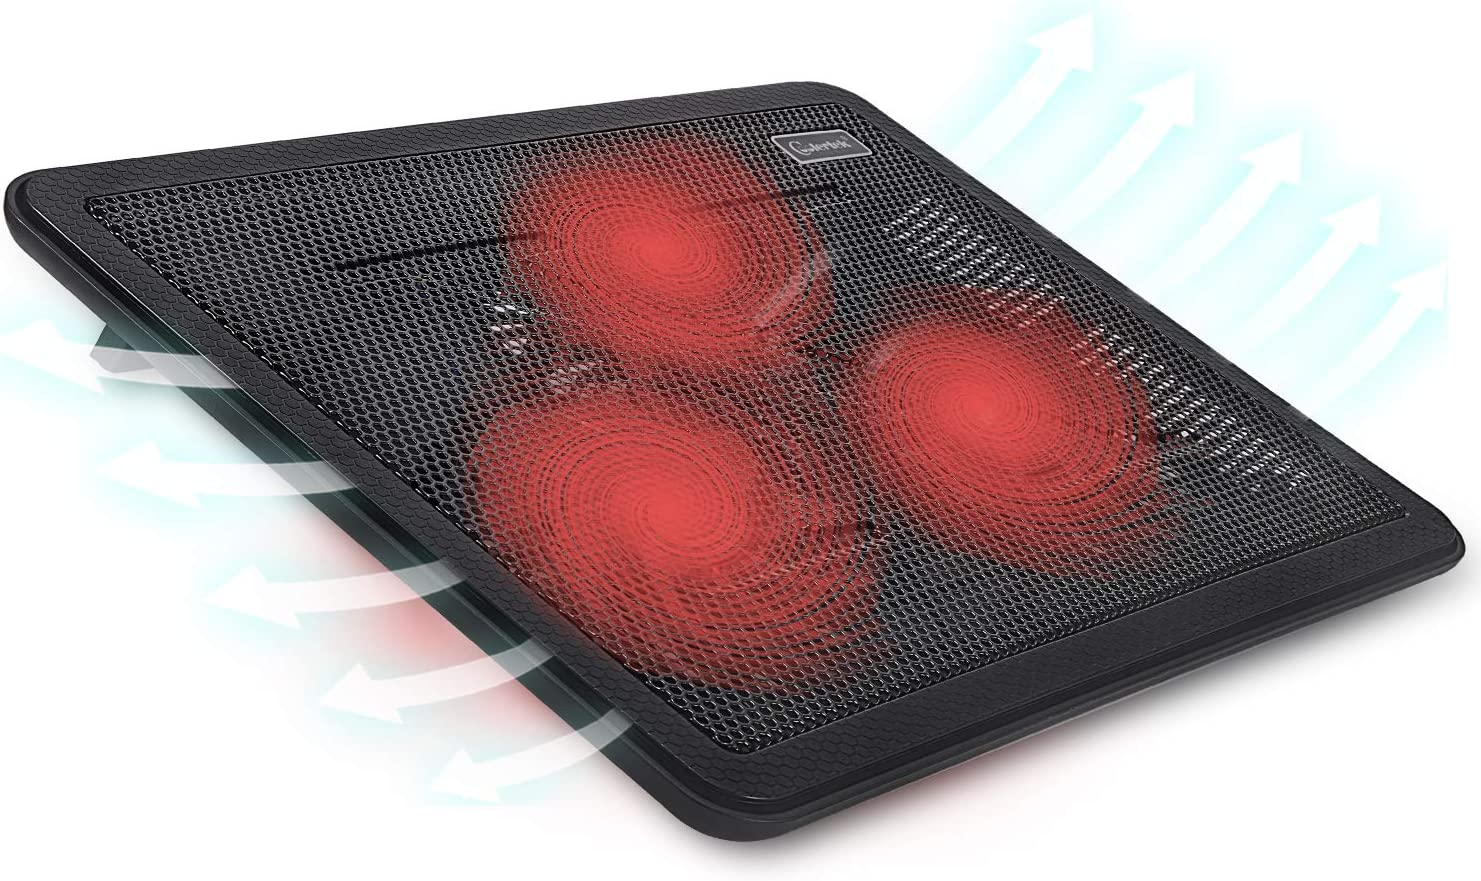 "Laptop Cooling pad-for 15""-17"" Computers,Portable Ultra-Thin Silent Cooling pad, with 2 USB Ports, 3 red LED Silent Fans, Adjustable Bracket, Extra Long Standby for Work"